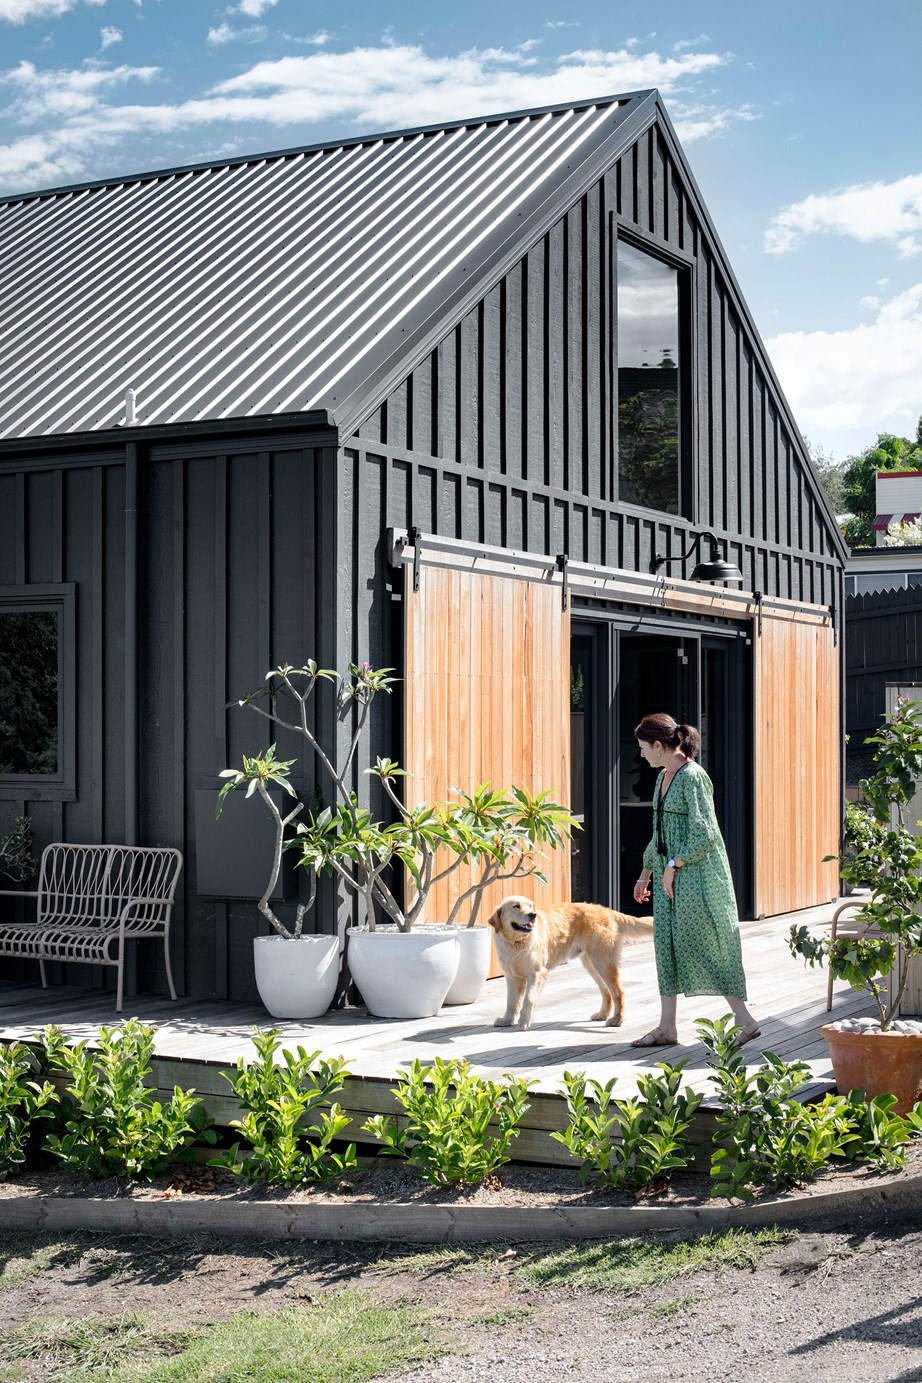 "A shared love of the aesthetic of barns, particularly dark-coloured Scandinavian designs, inspired this [modern barn style house](https://www.homestolove.com.au/modern-barn-style-house-19961|target=""_blank"") with waterfront views on Lake Conjola. The [home's exterior is clad](https://www.homestolove.com.au/wall-cladding-ideas-16125